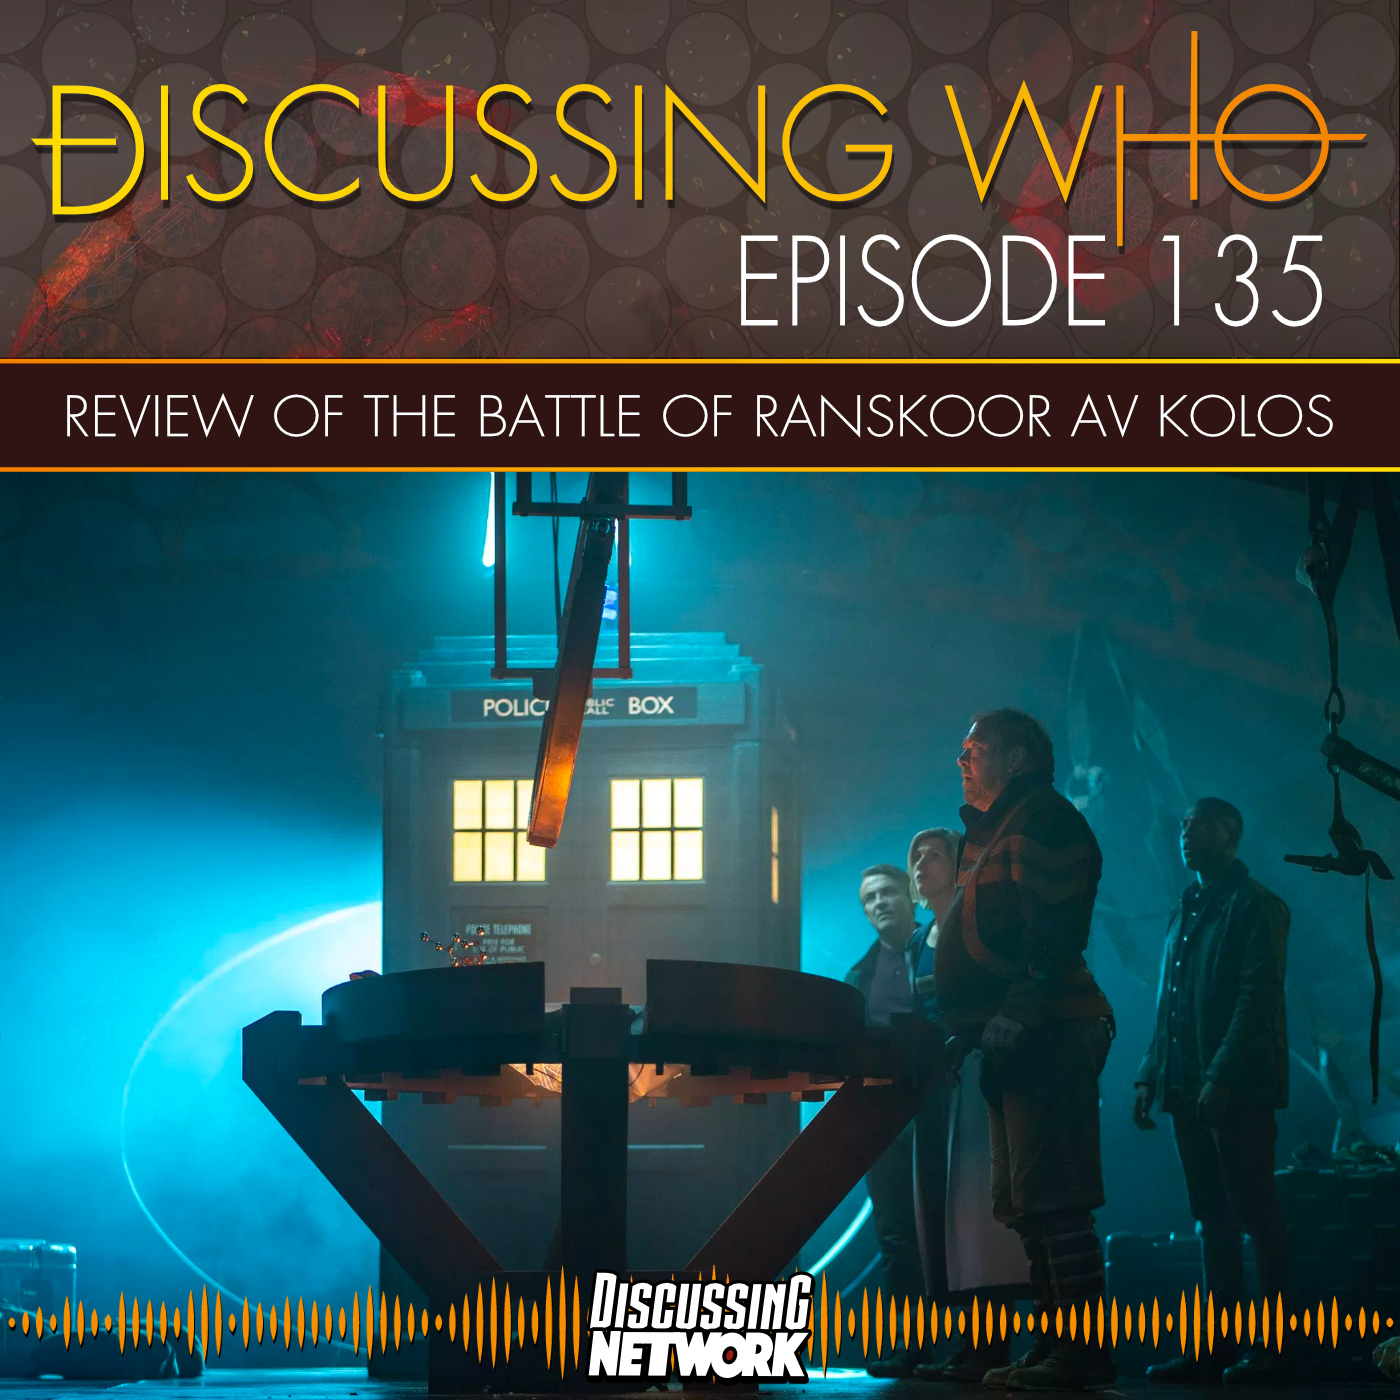 Review of The Battle of Ranskoor Av Kolos